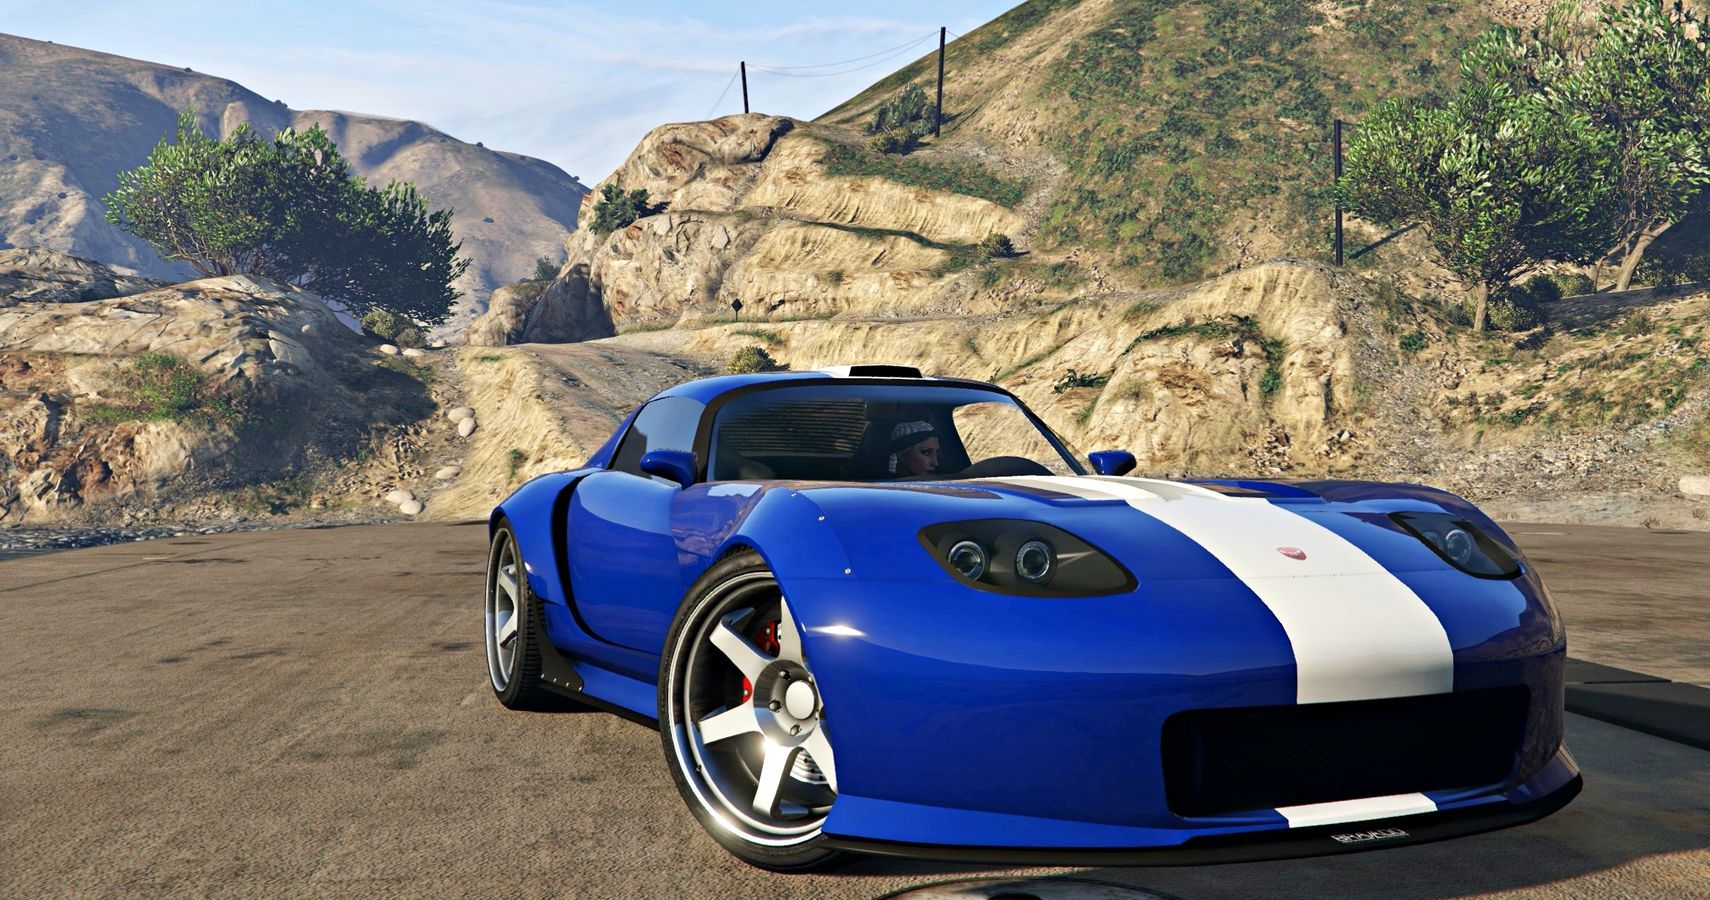 Was The Dodge Viper The Inspiration For The Banshee 900R In GTAV?